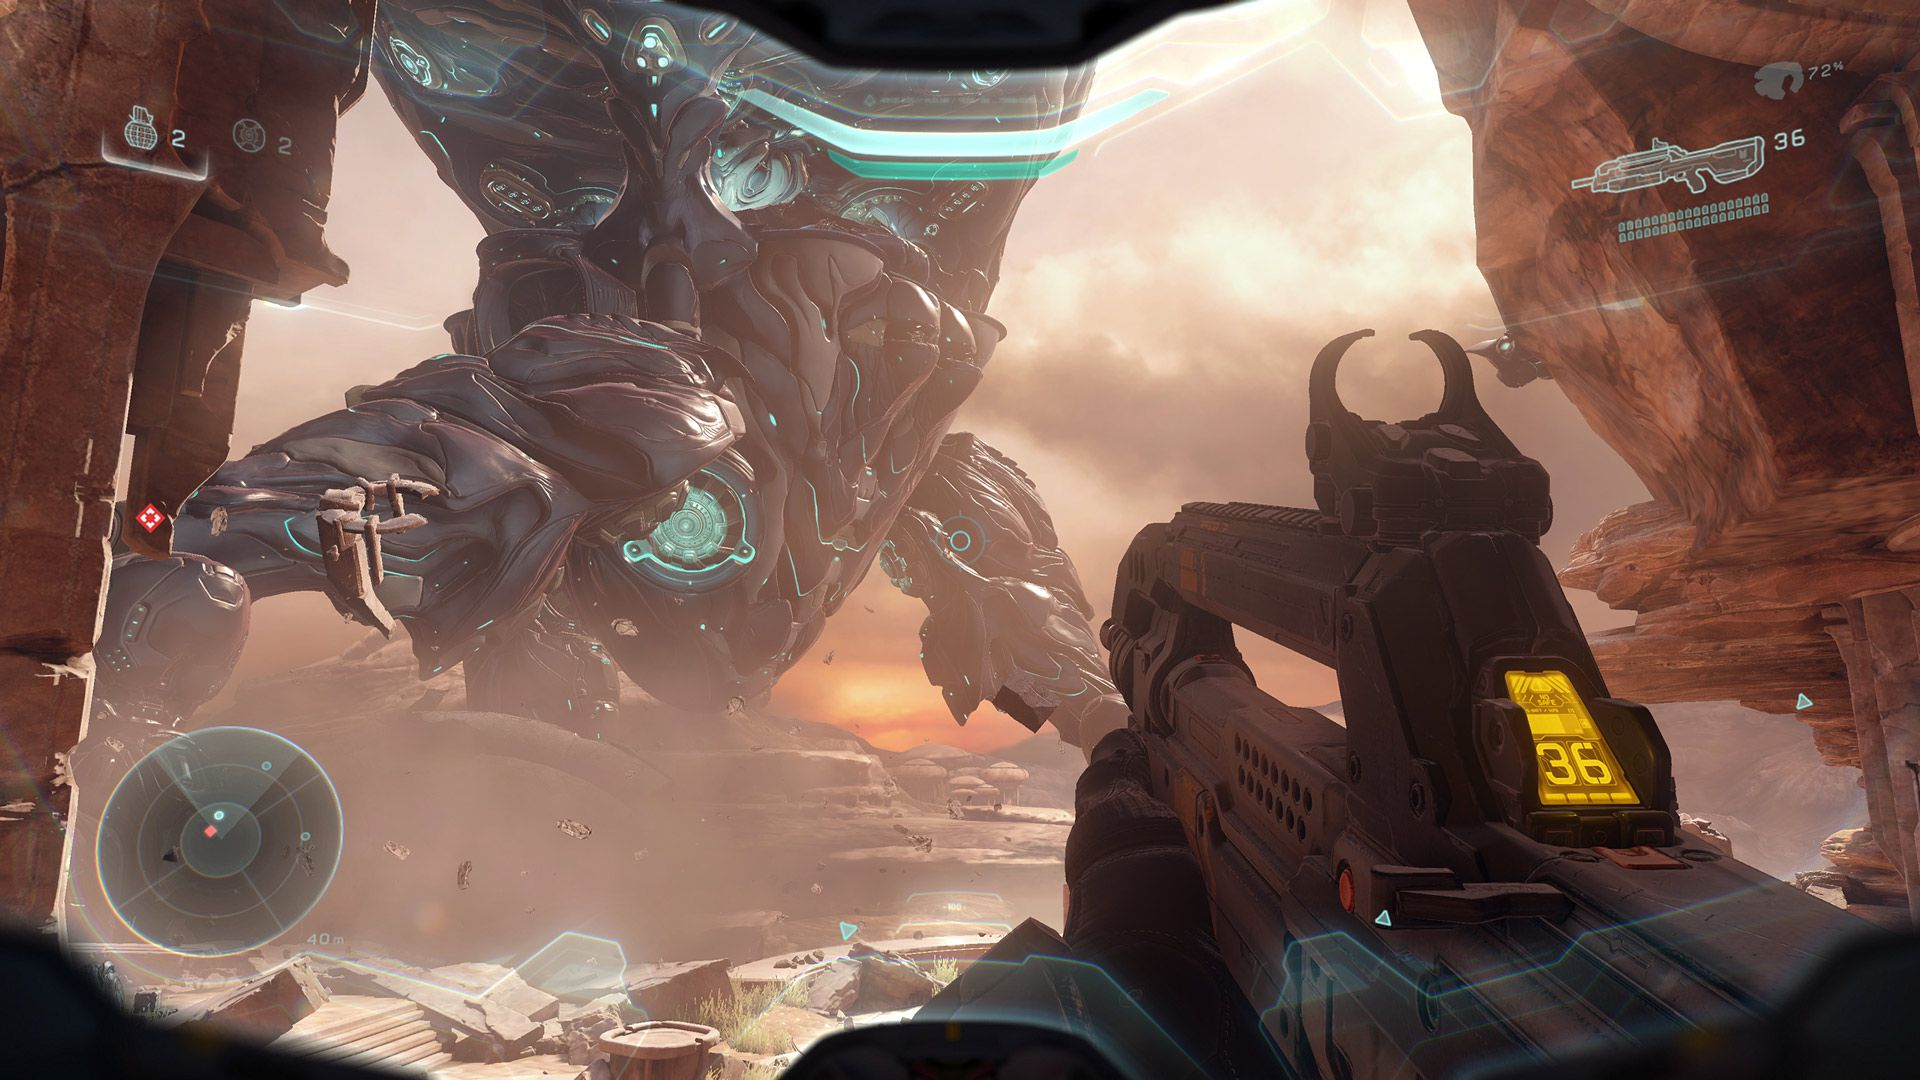 35 days out: Hands on with Halo 5's campaign | Polygon